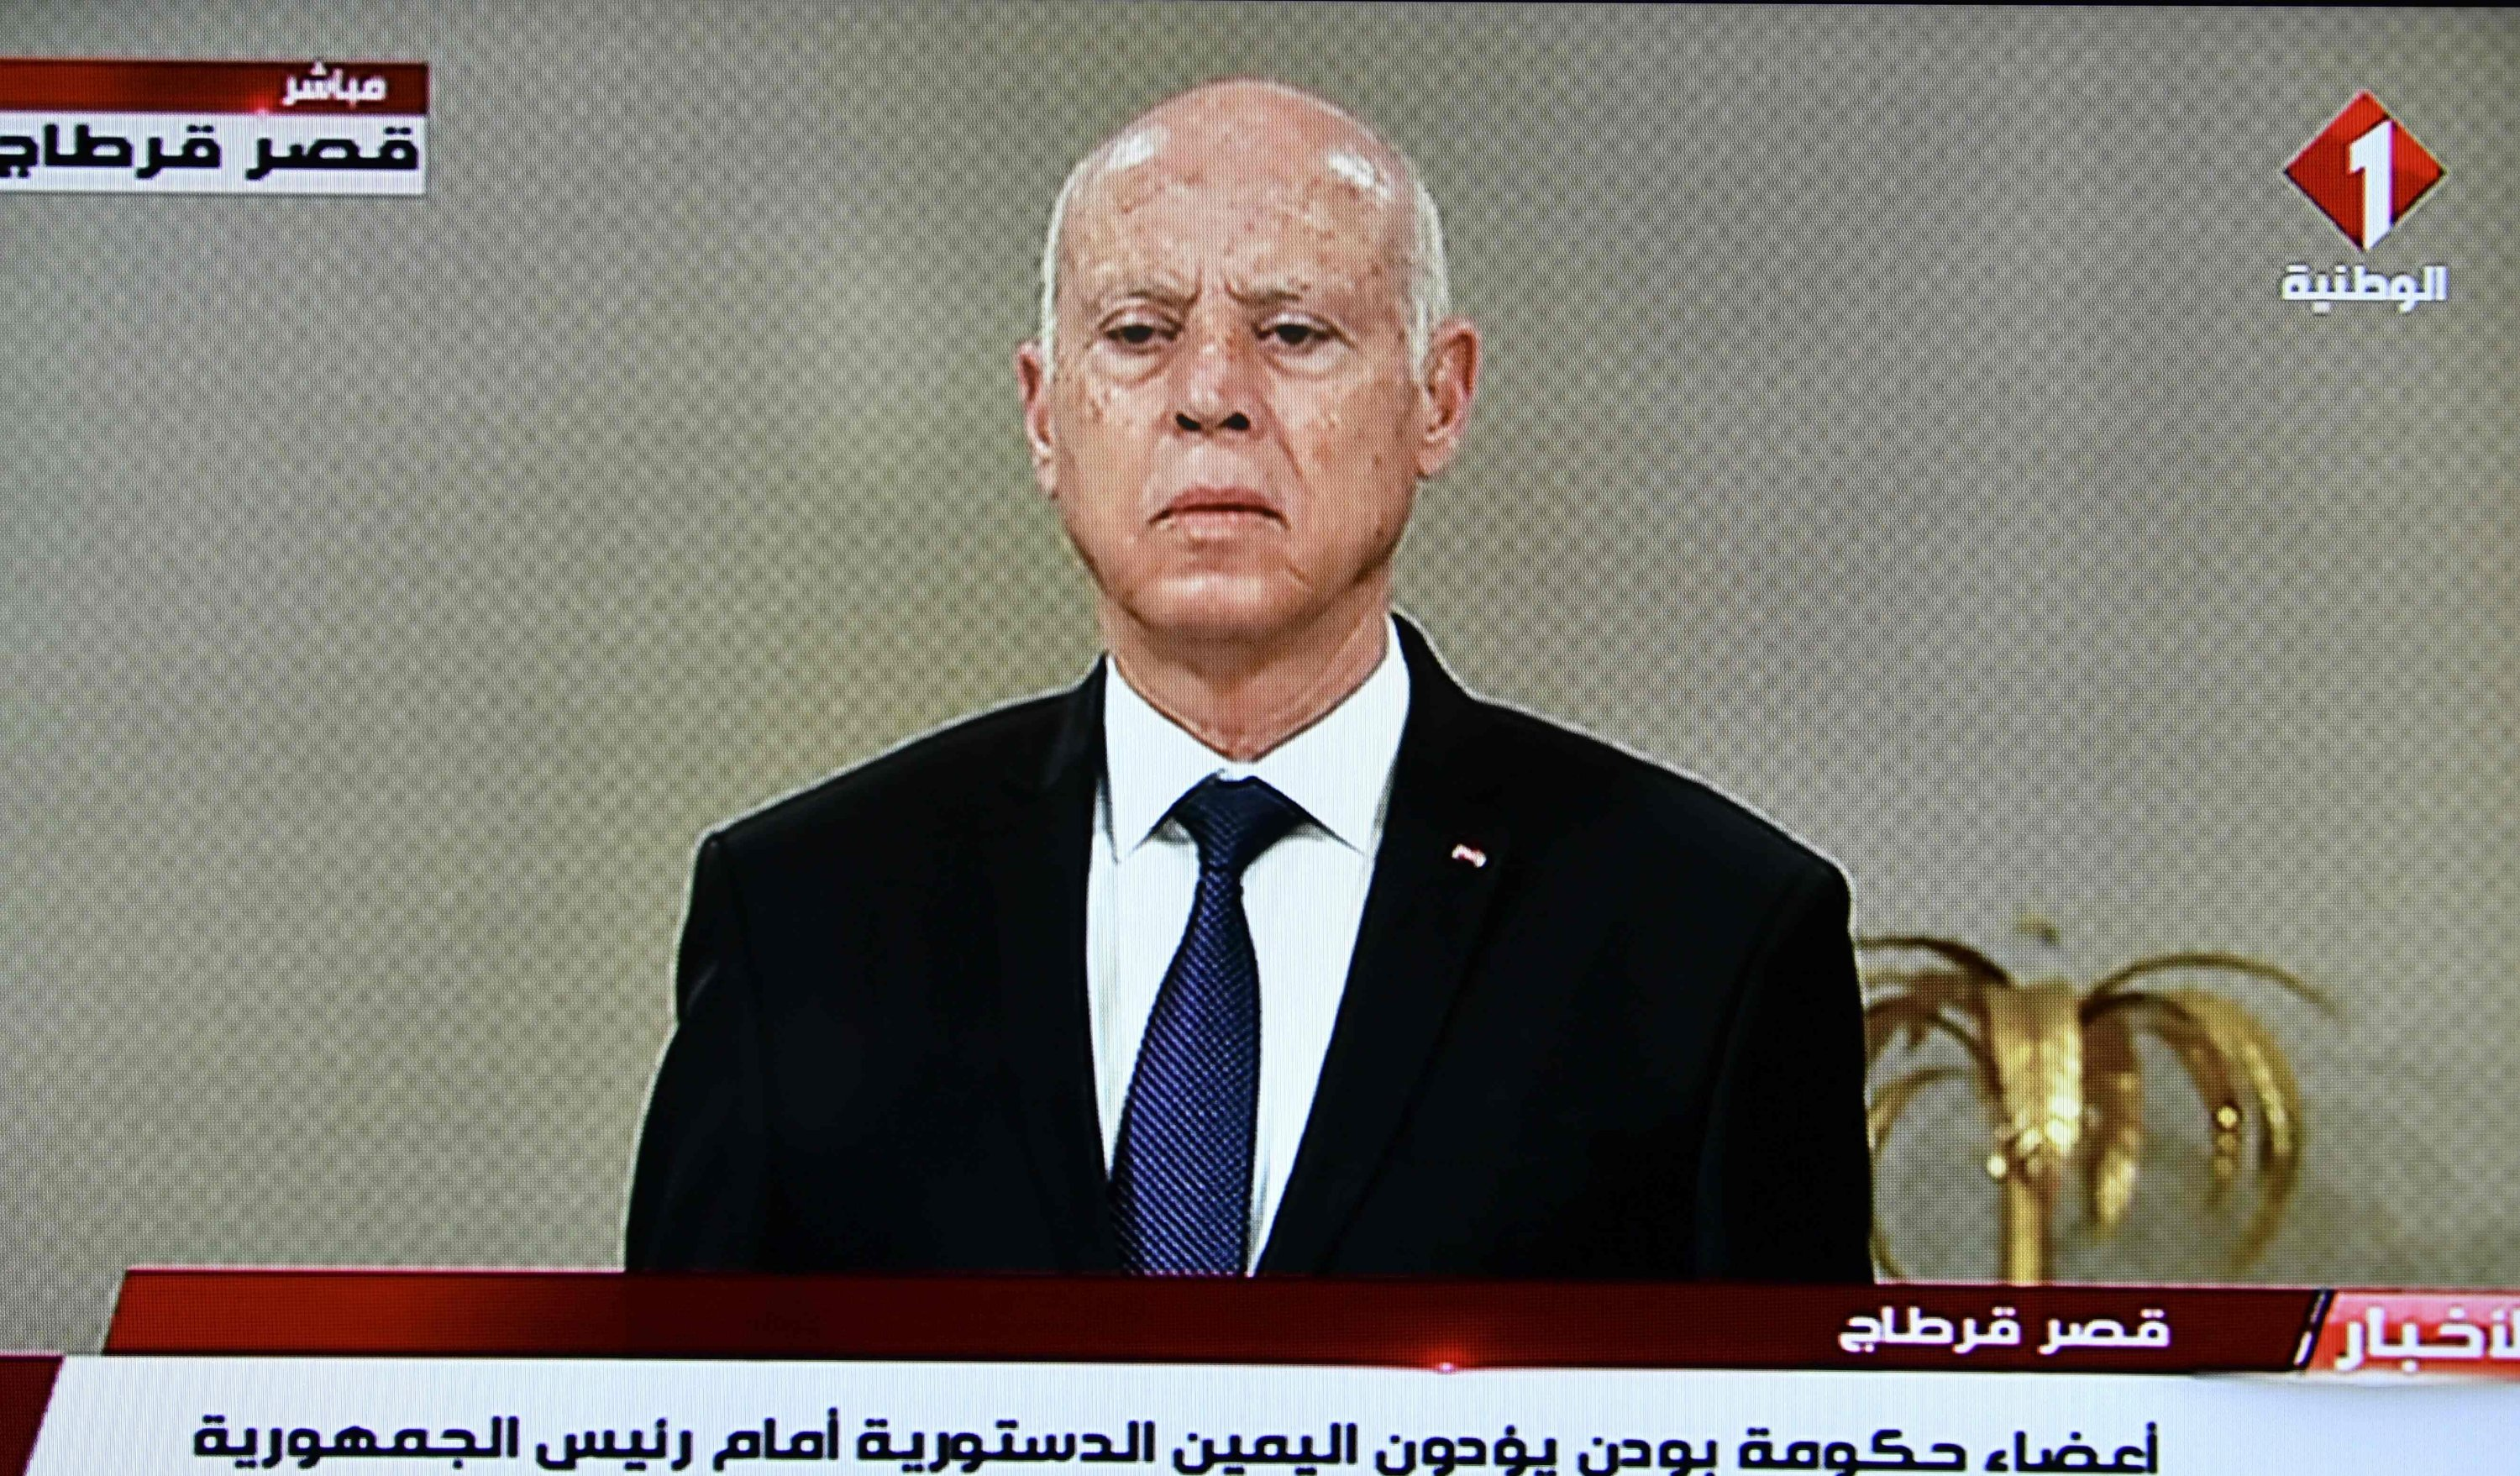 A screengrab shows Tunisia's national television broadcast of President Kais Saied announcing the formation of a new government at the Carthage Palace, Tunis, Tunisia, Oct. 11, 2021. (AFP Photo)